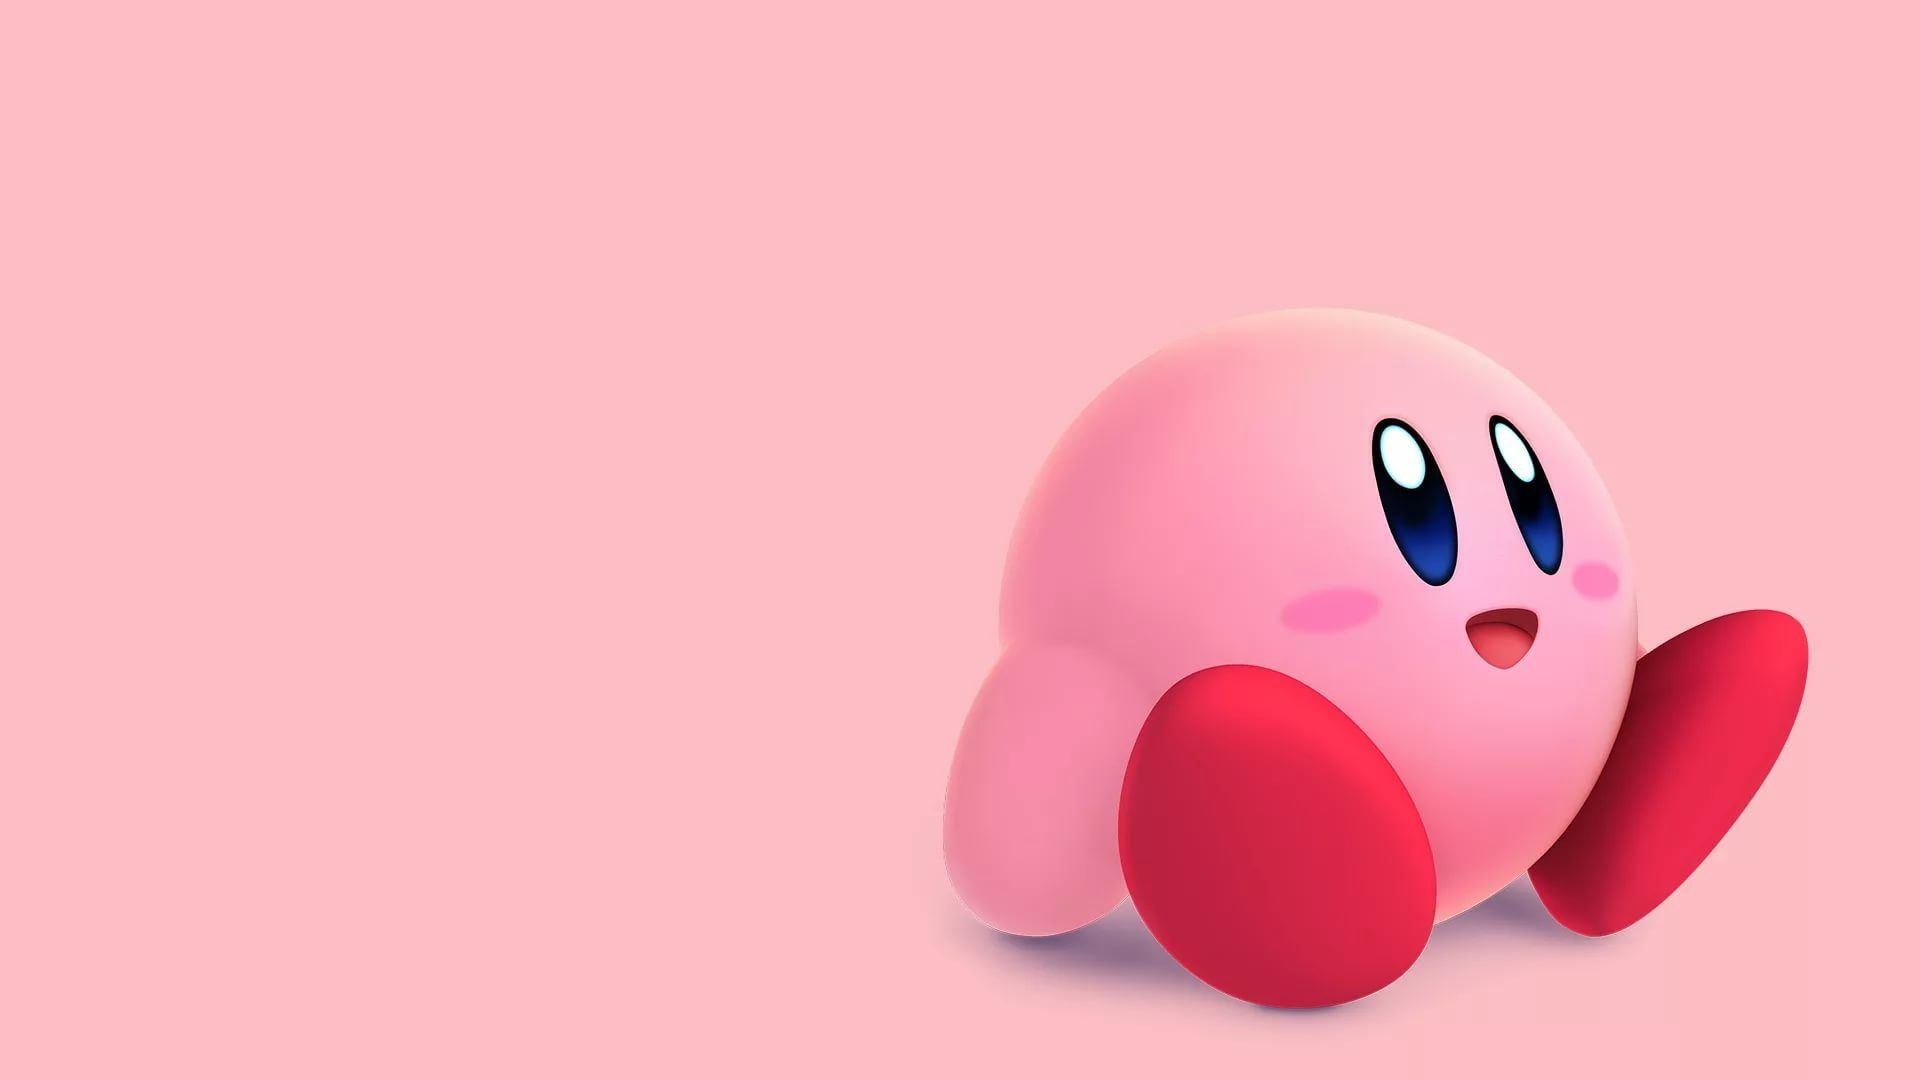 Kirby Wallpapers - Top Free Kirby Backgrounds ...